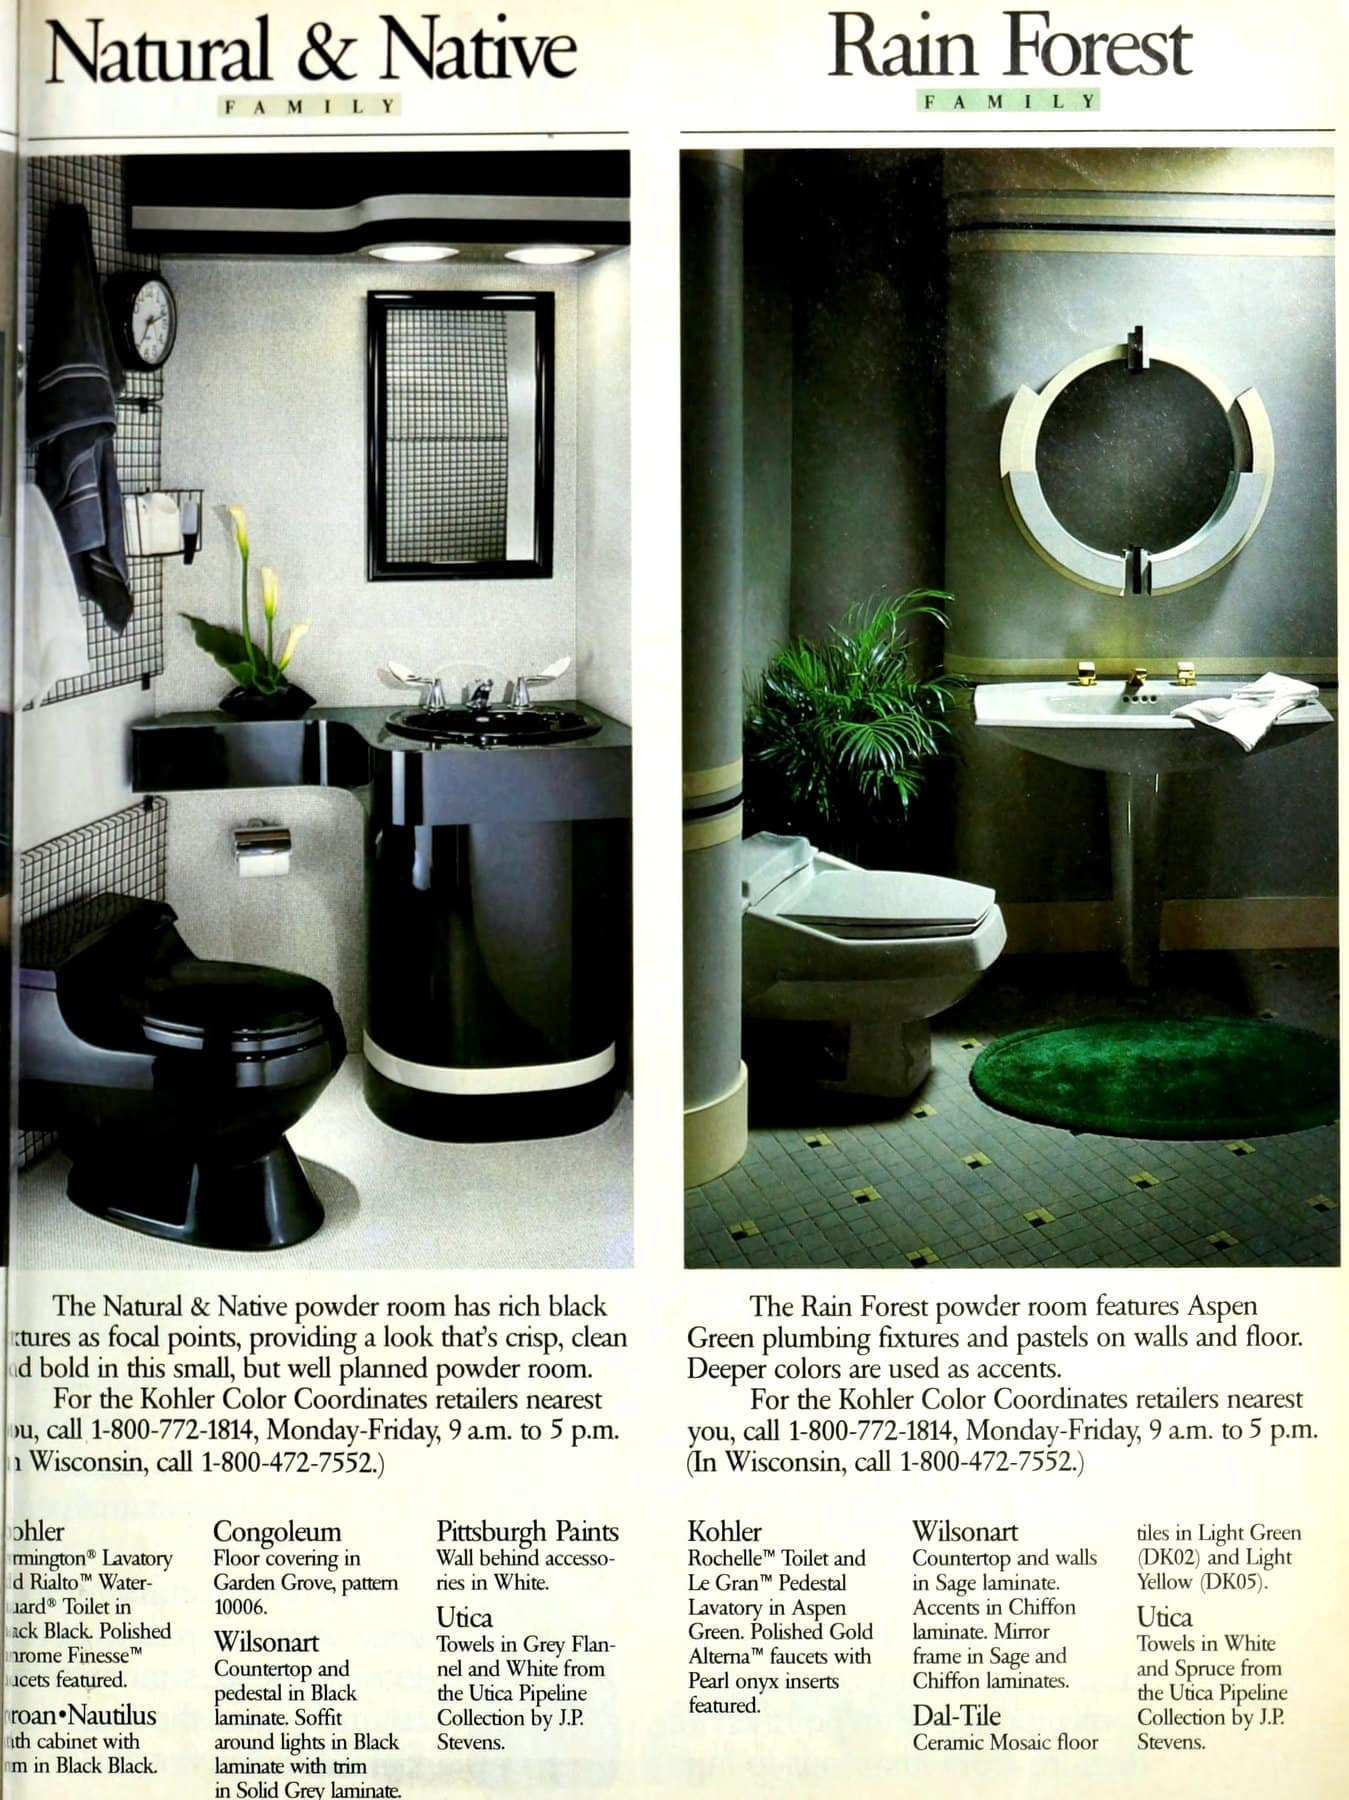 Retro Natural and Rain Forest powder room color schemes from the eighties